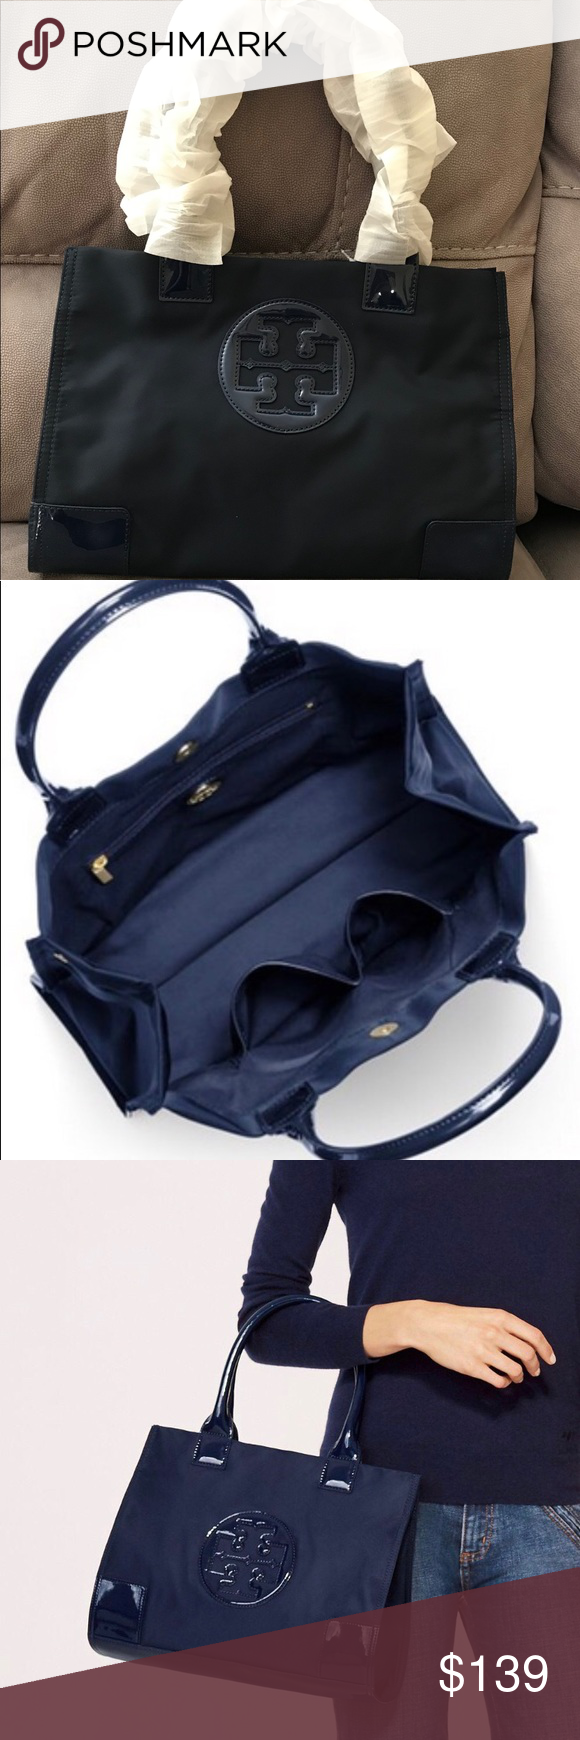 4c6d0bf1a25f Tory Burch Ella Nylon Mini Tote - French Navy Nylon and PVC. Magnetic snap  closure. 2 gusset snaps. 3 interior pockets. Tubular leather handle with  6.5